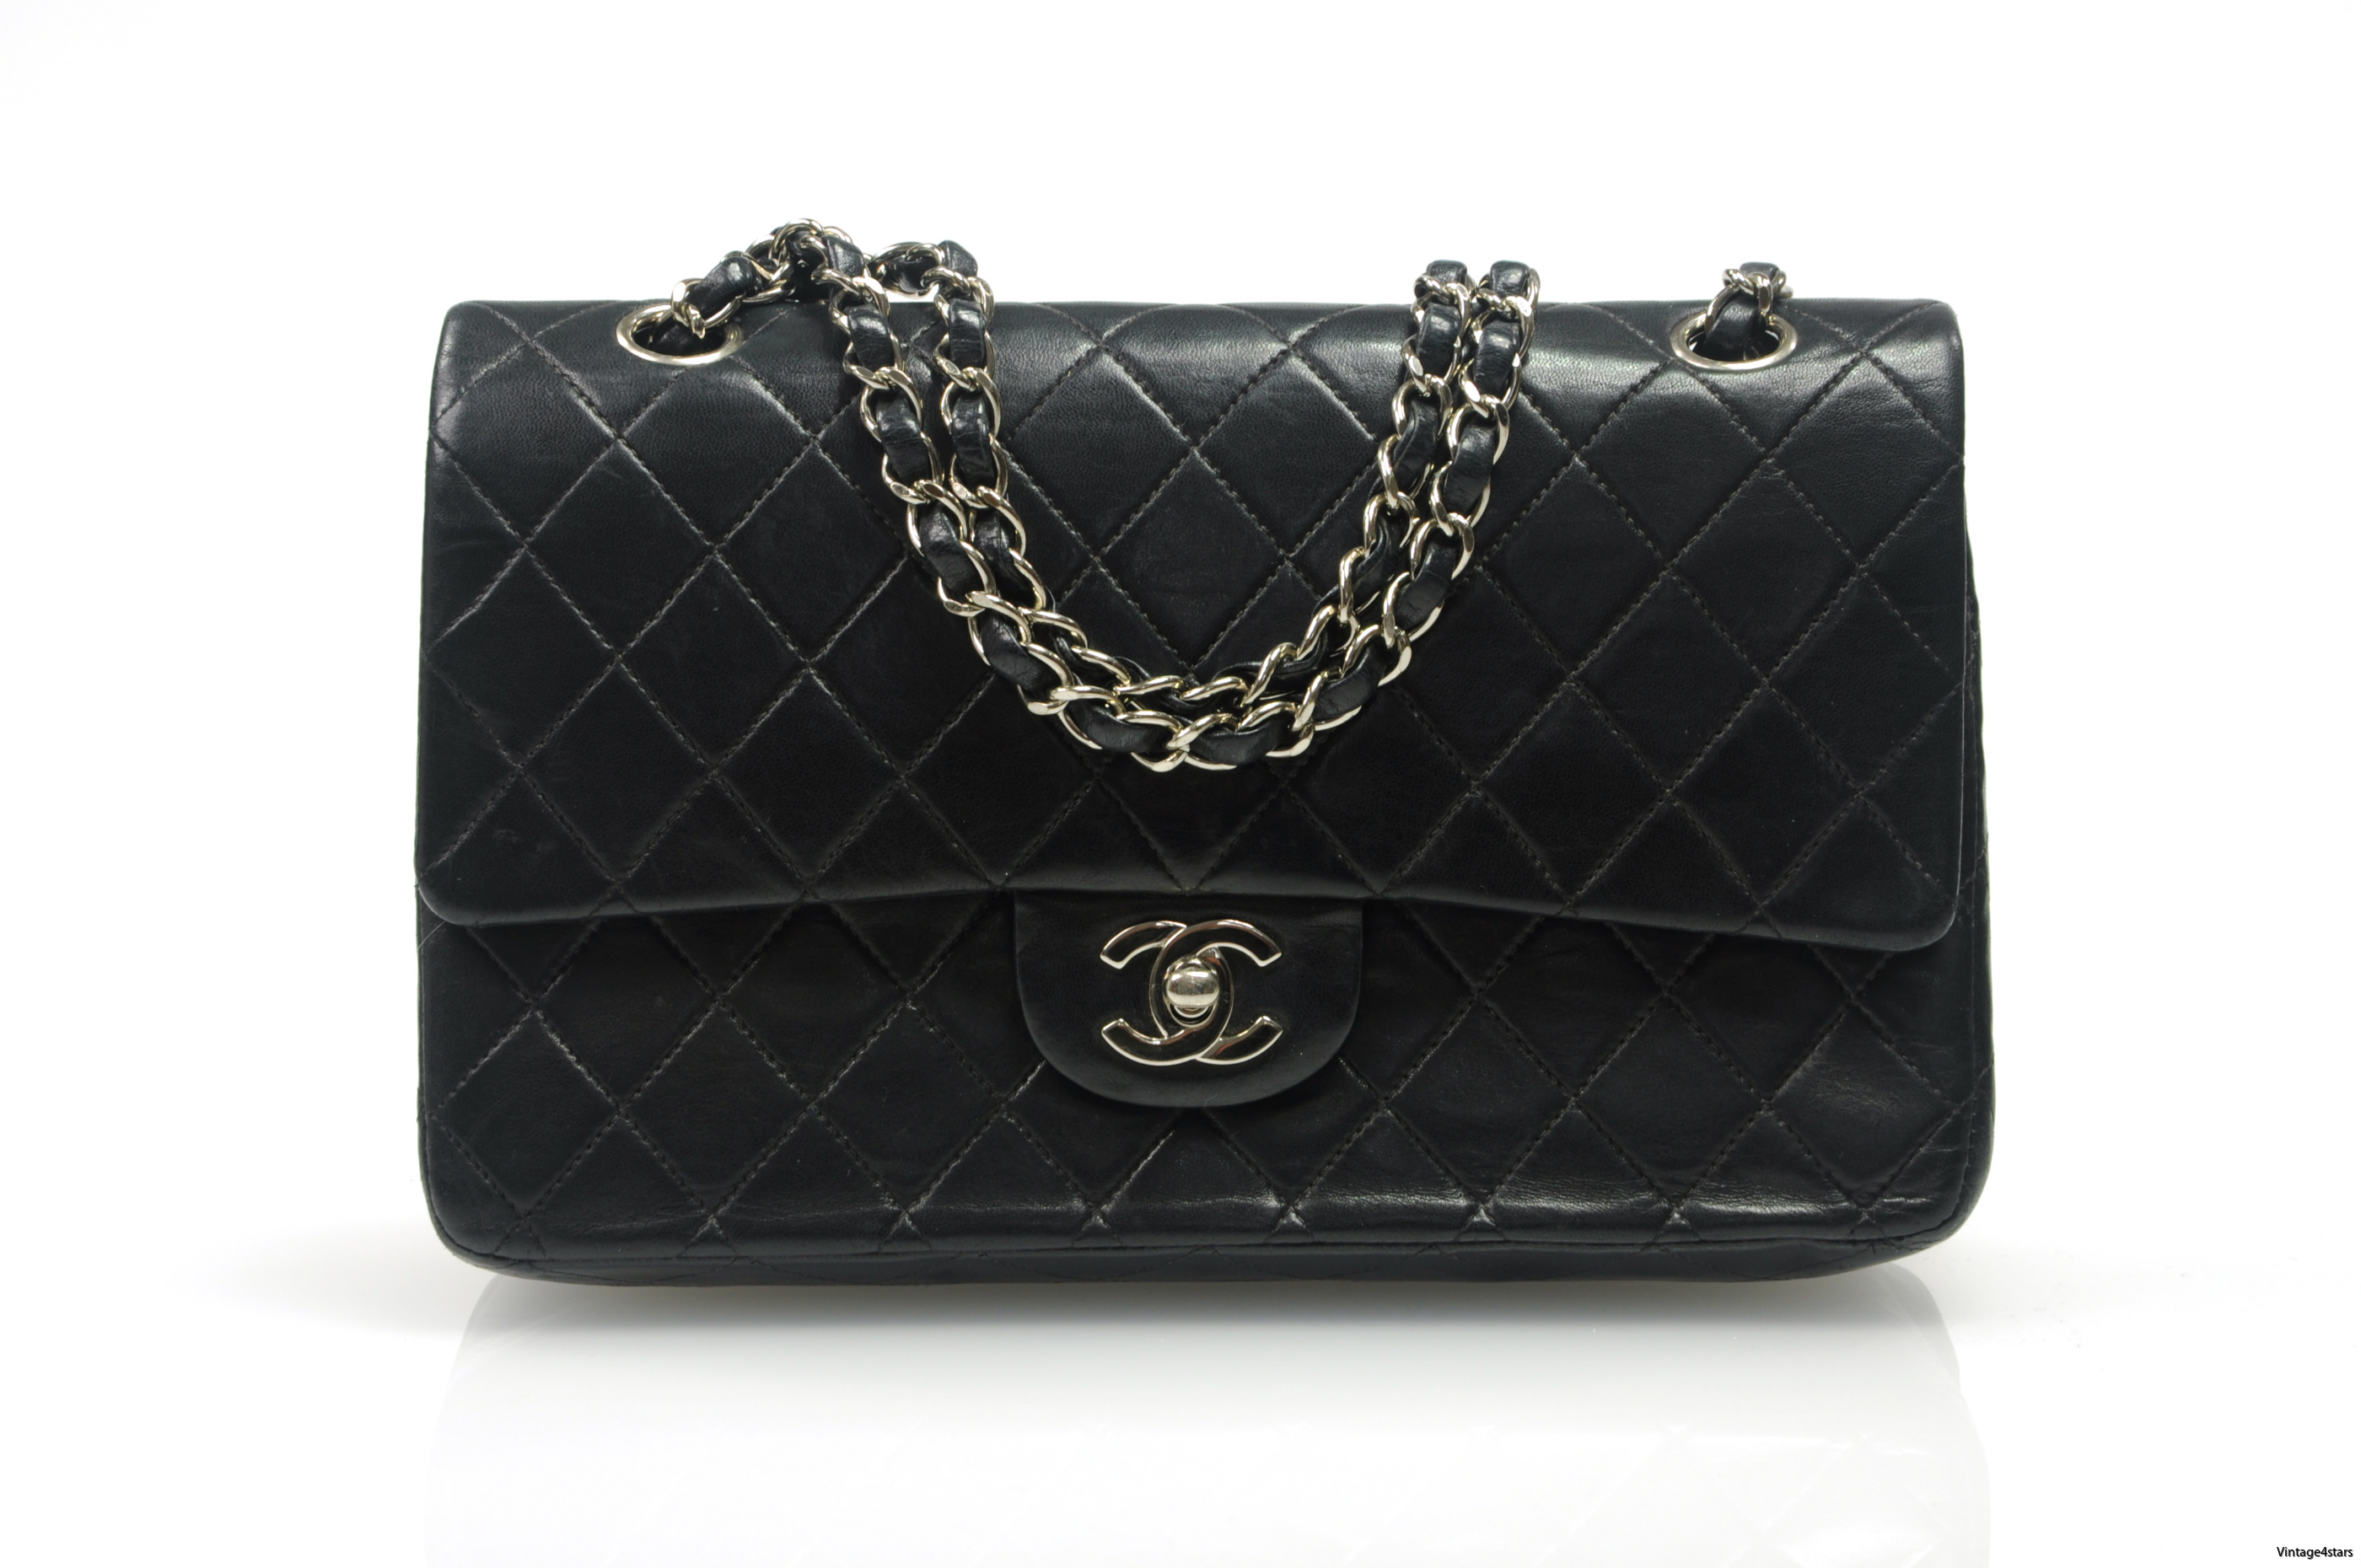 CHANEL Double Flap SHW 3